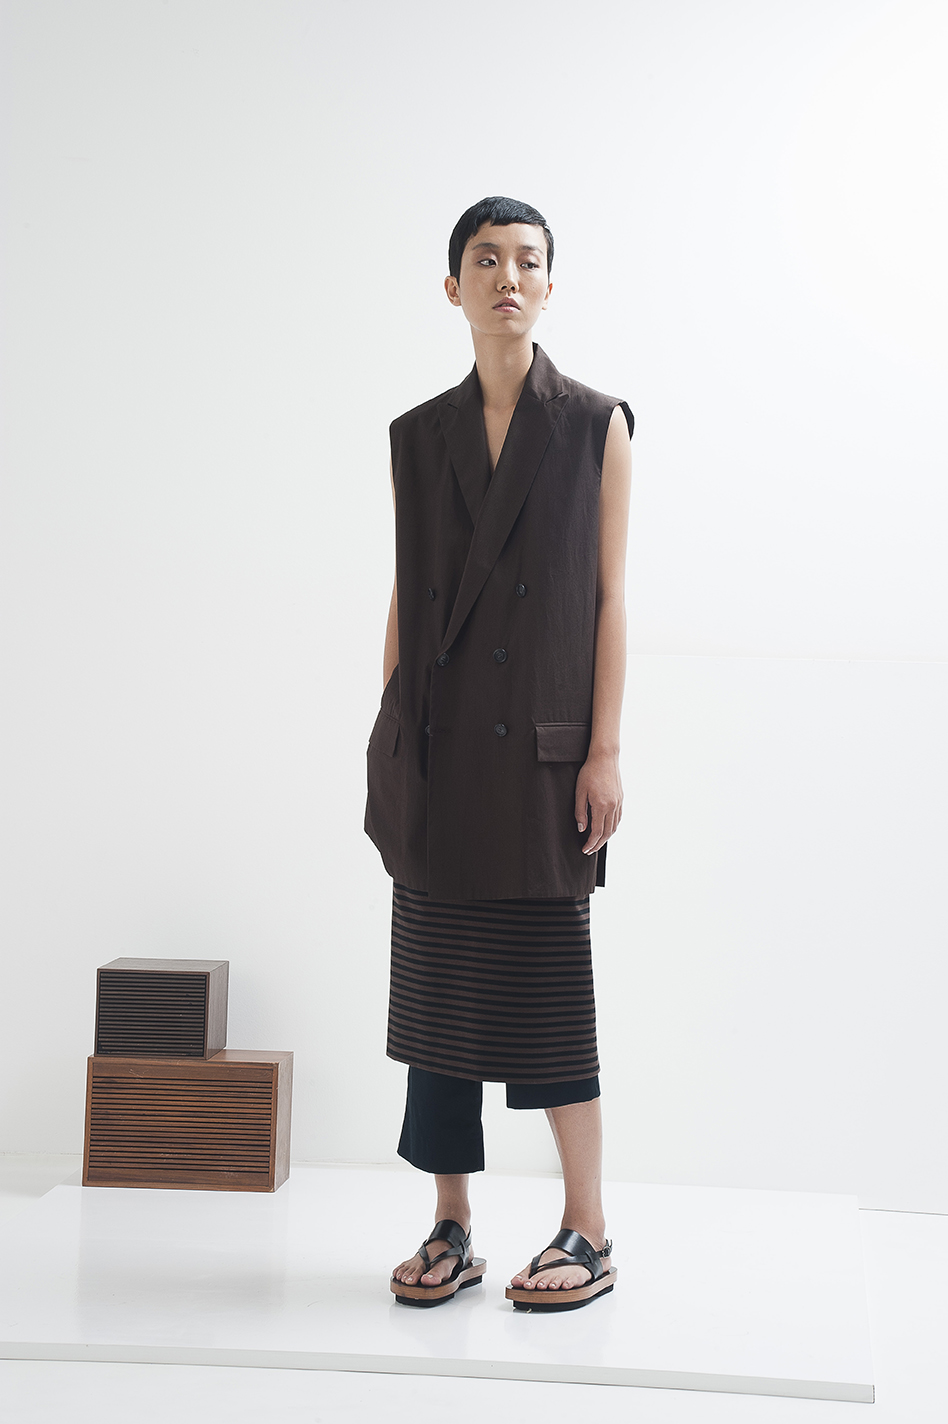 ASVOF-2015-09-27-Lucio Vanotti ss16 - by Sophie Joy Wright-Sophie Joy Wright-11948235.jpg